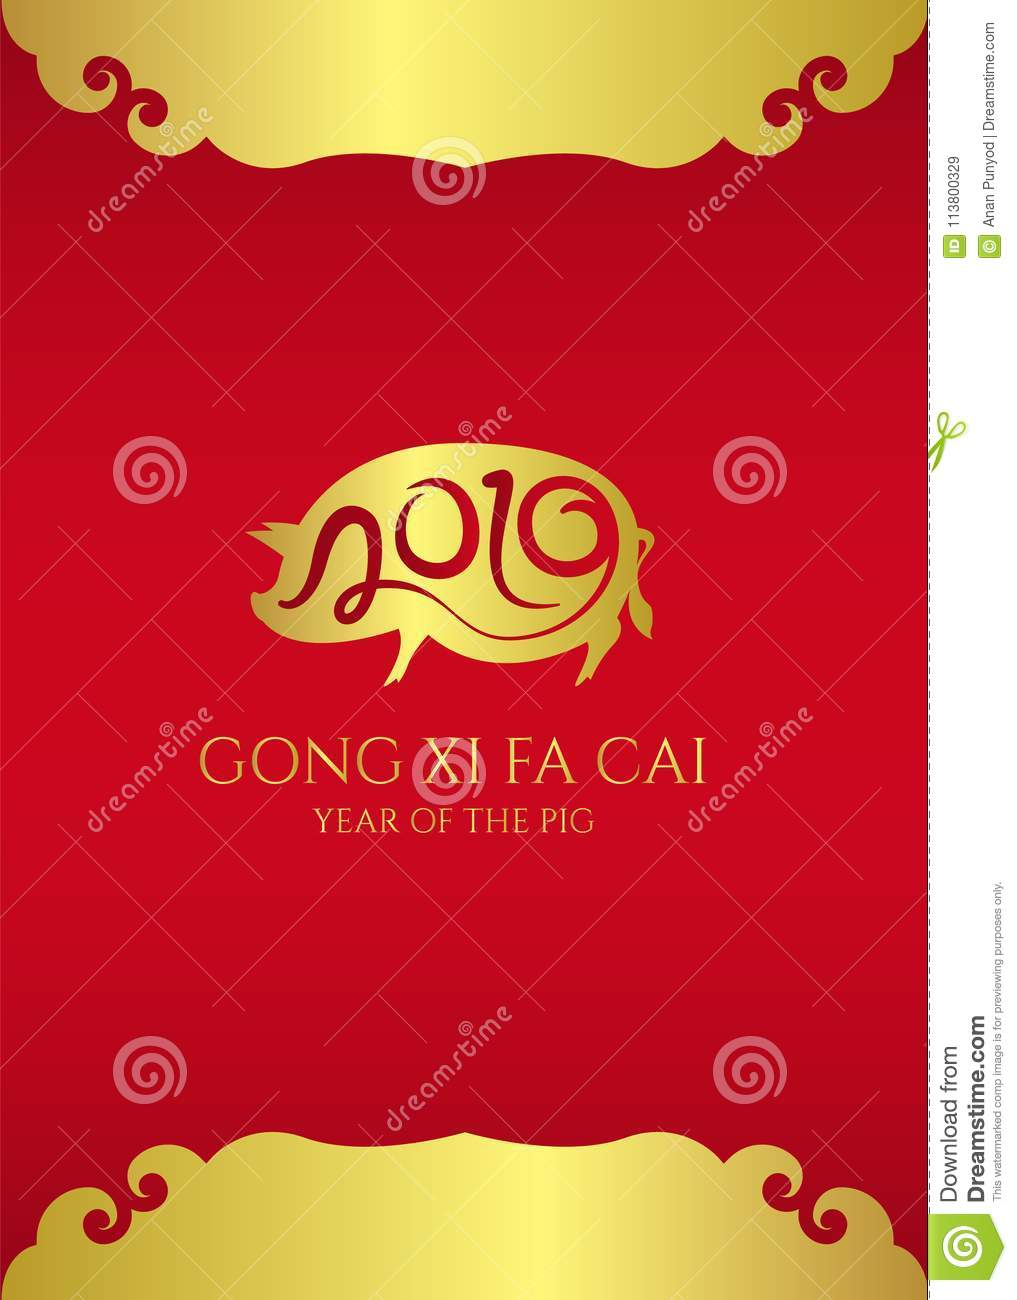 Sign wordsgong xi fa cai season holiday greetings happy chinese new year 2019 card with 2019 abstract text in gold pig happy chinese new year card abstract text gold pig zodiac sign gong xi fa cai wishing m4hsunfo